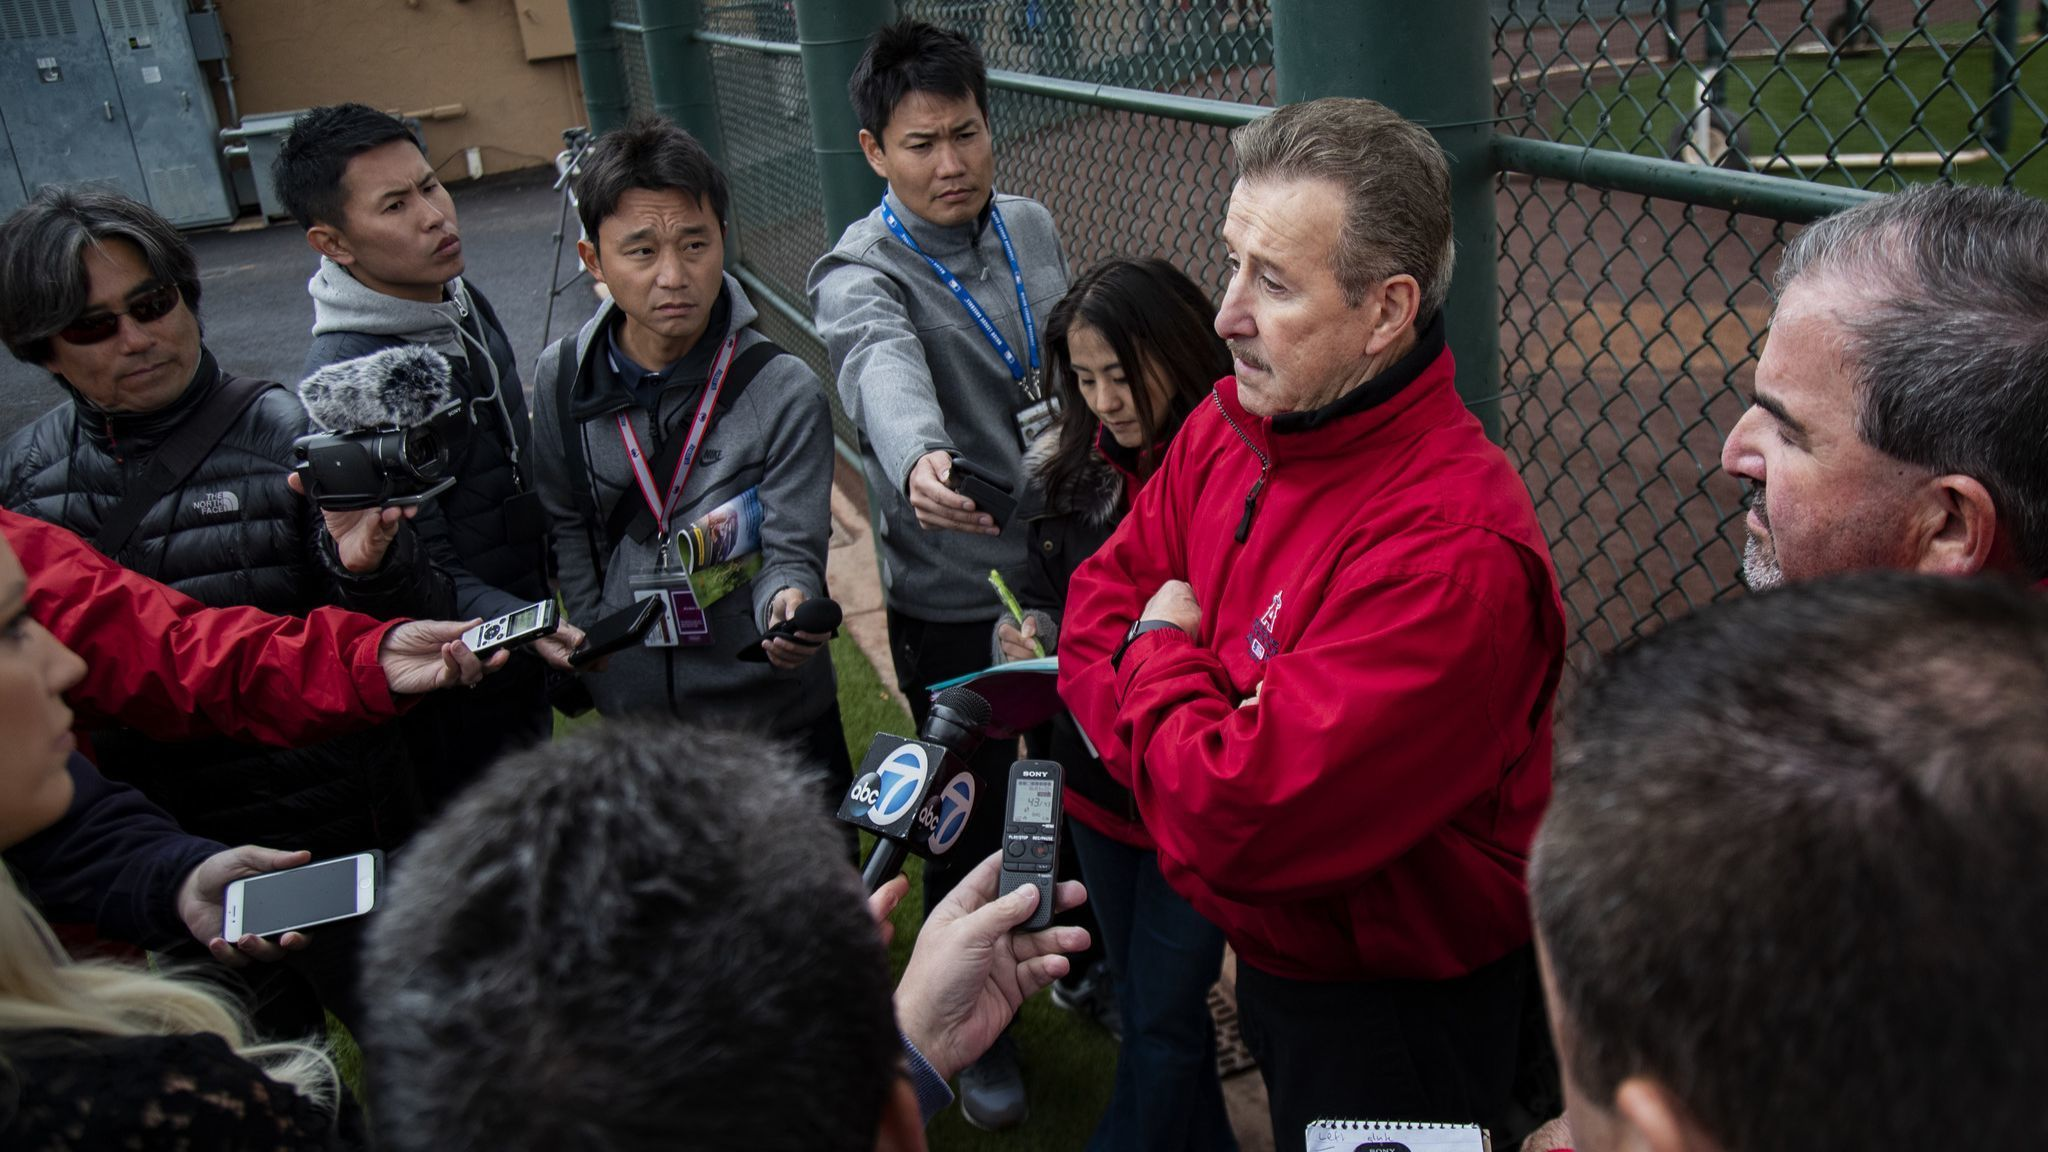 Angels owner Arte Moreno says he is interested in purchasing Fox Sports outlets